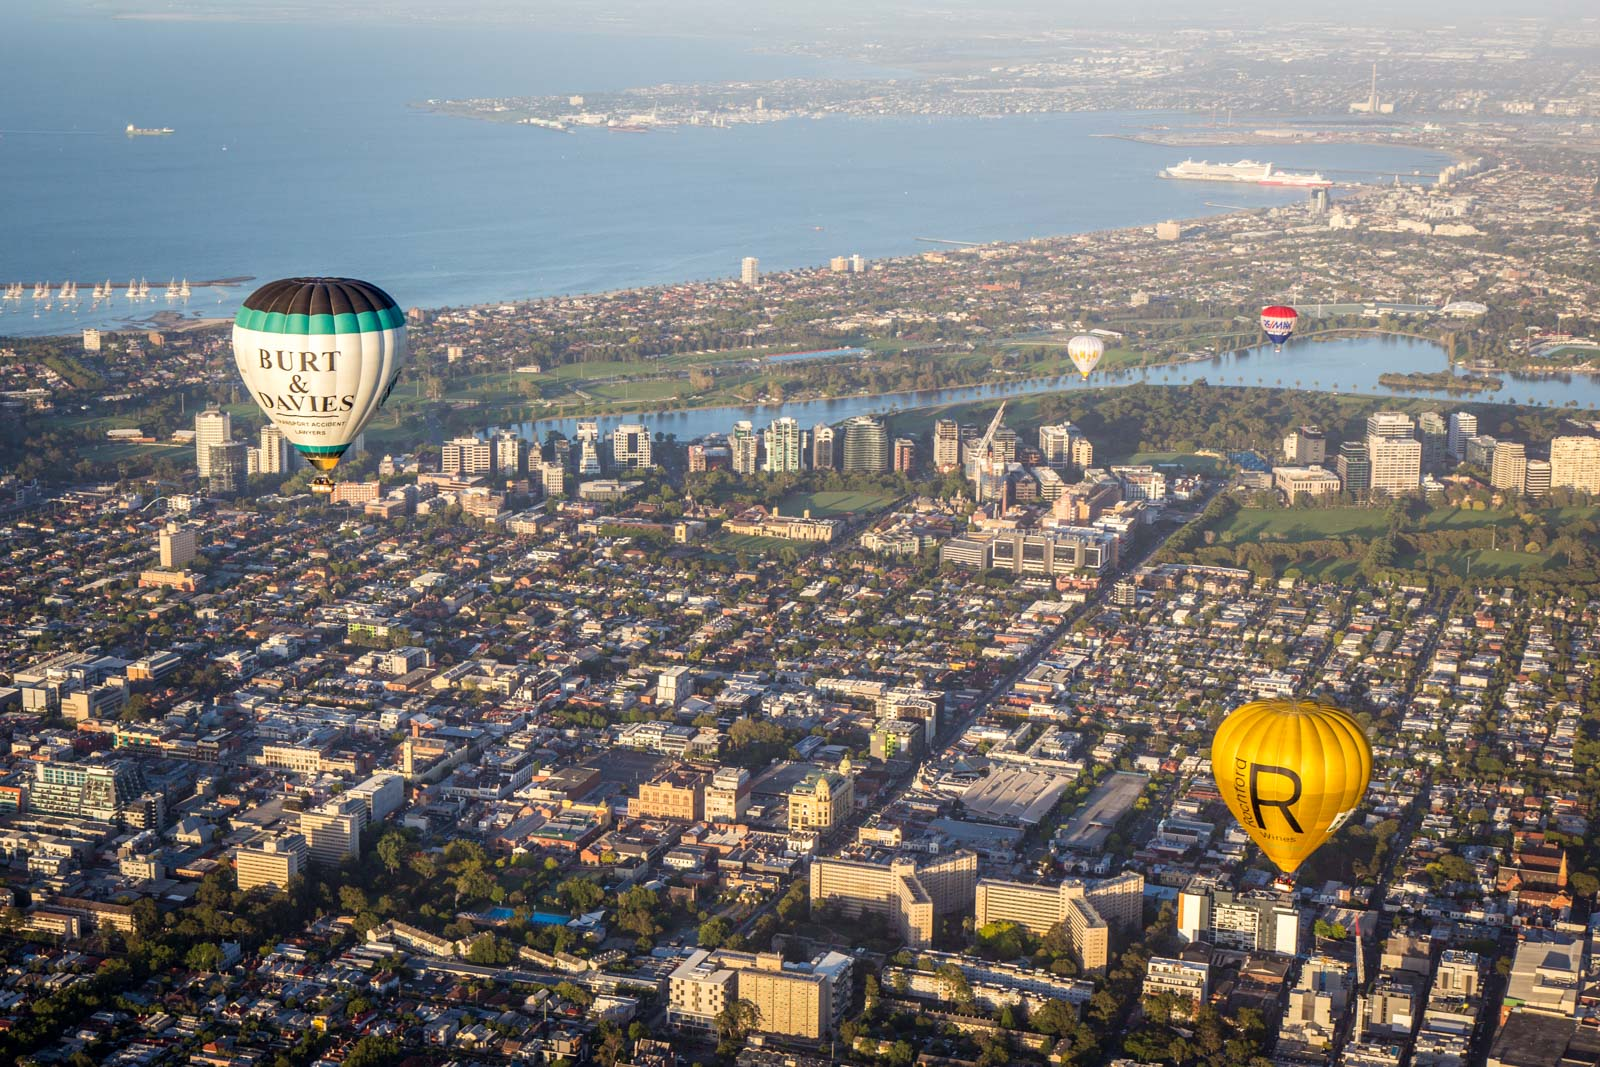 Melbourne to Sydney road trip guide